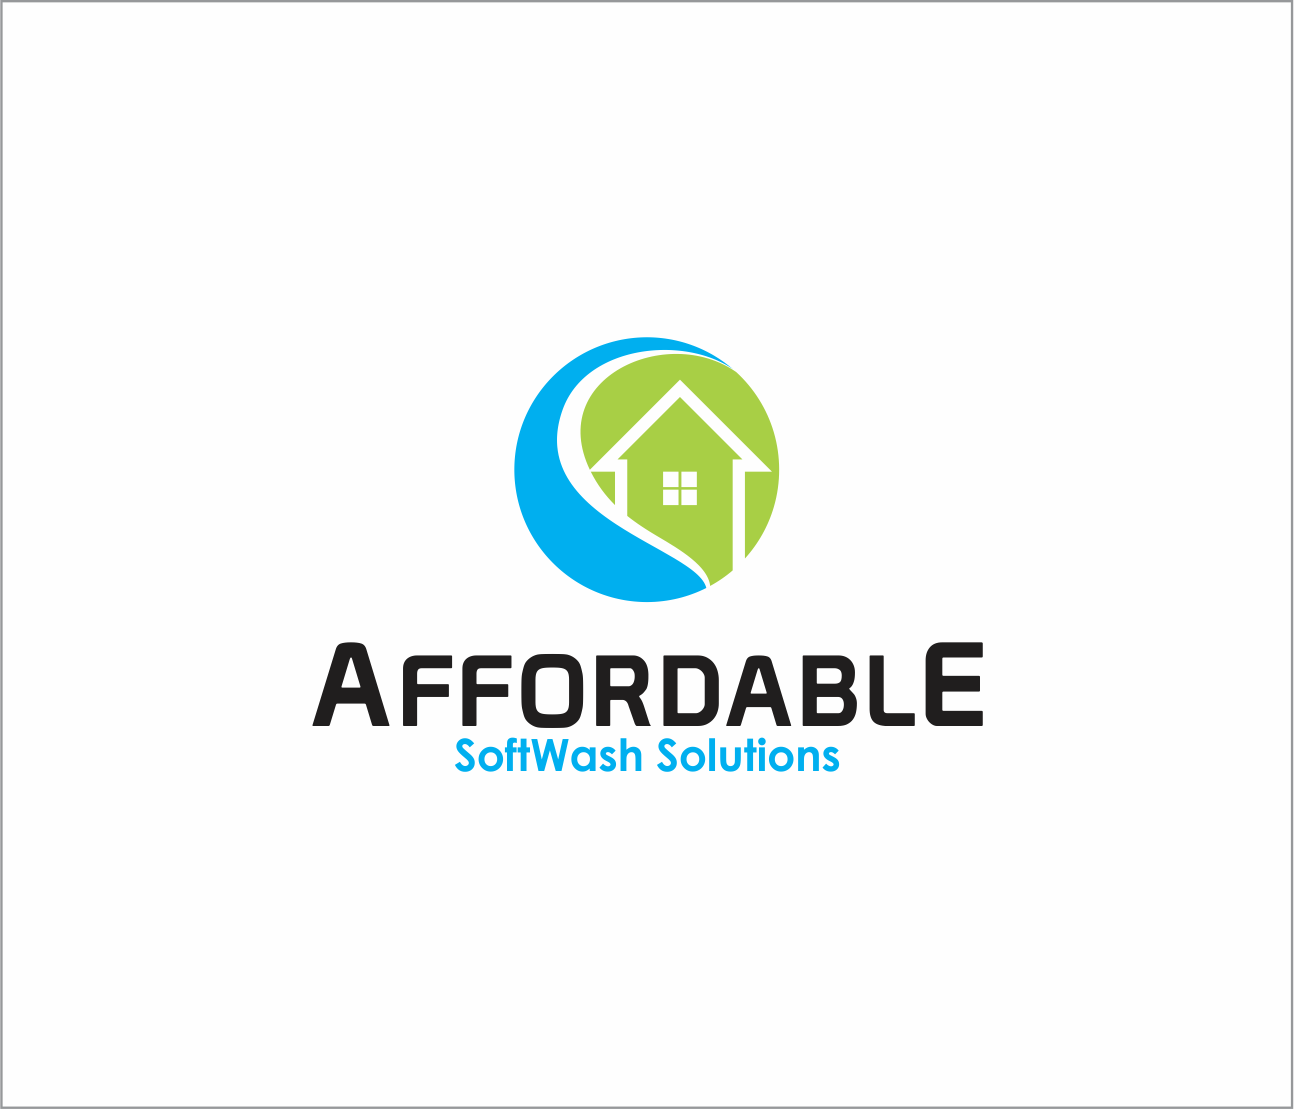 Logo Design by Armada Jamaluddin - Entry No. 32 in the Logo Design Contest Imaginative Logo Design for Affordable SoftWash Solutions.